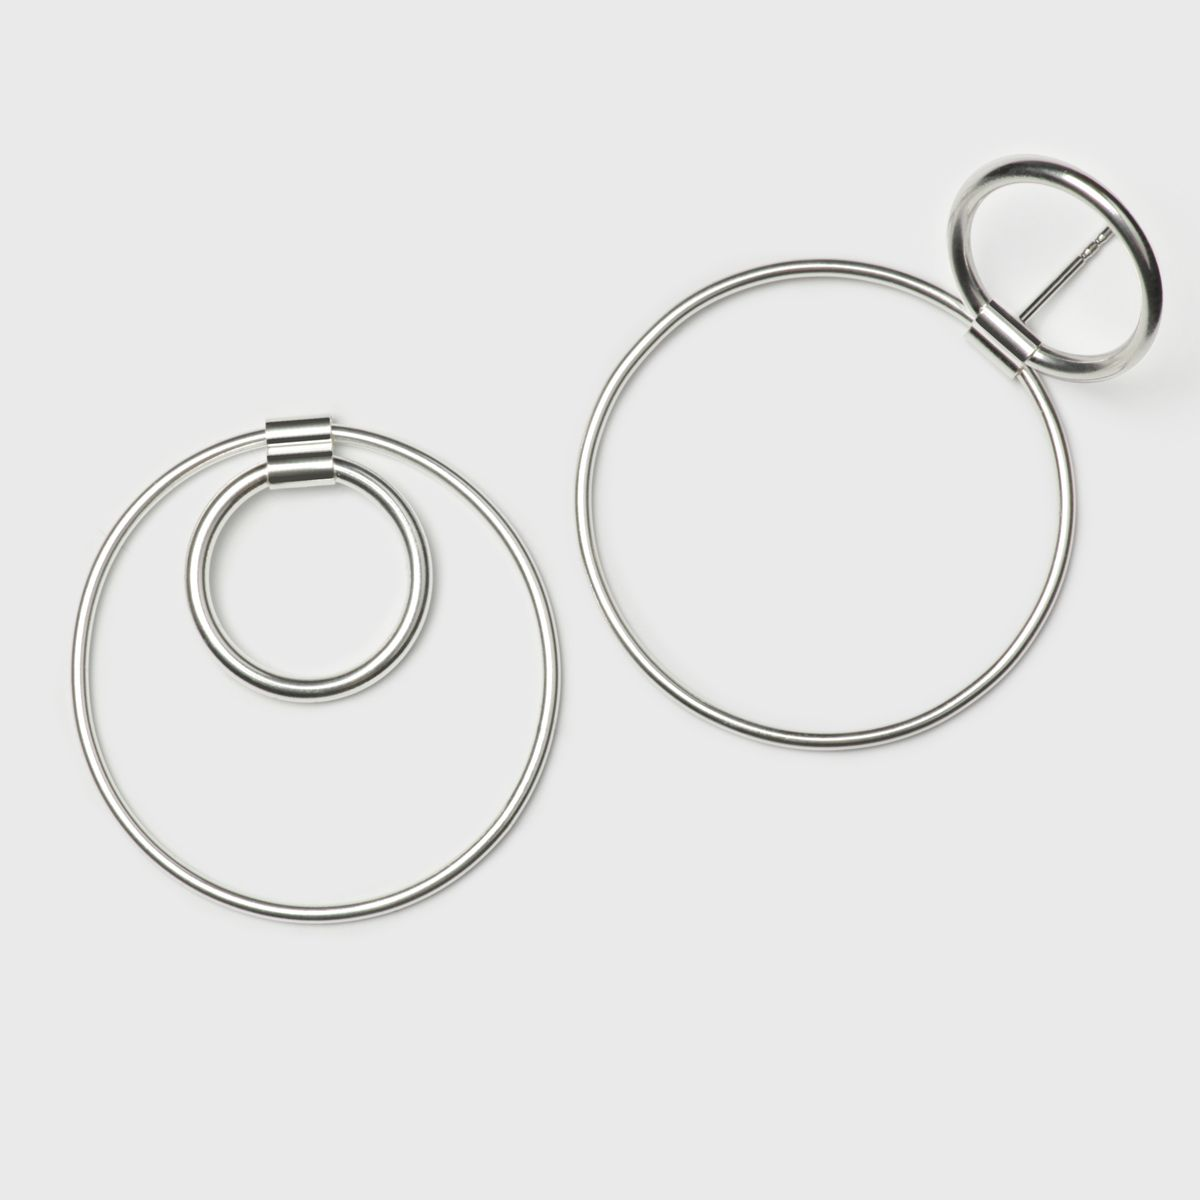 Pin auf Earrings Ohrringe – minimalist jewelry